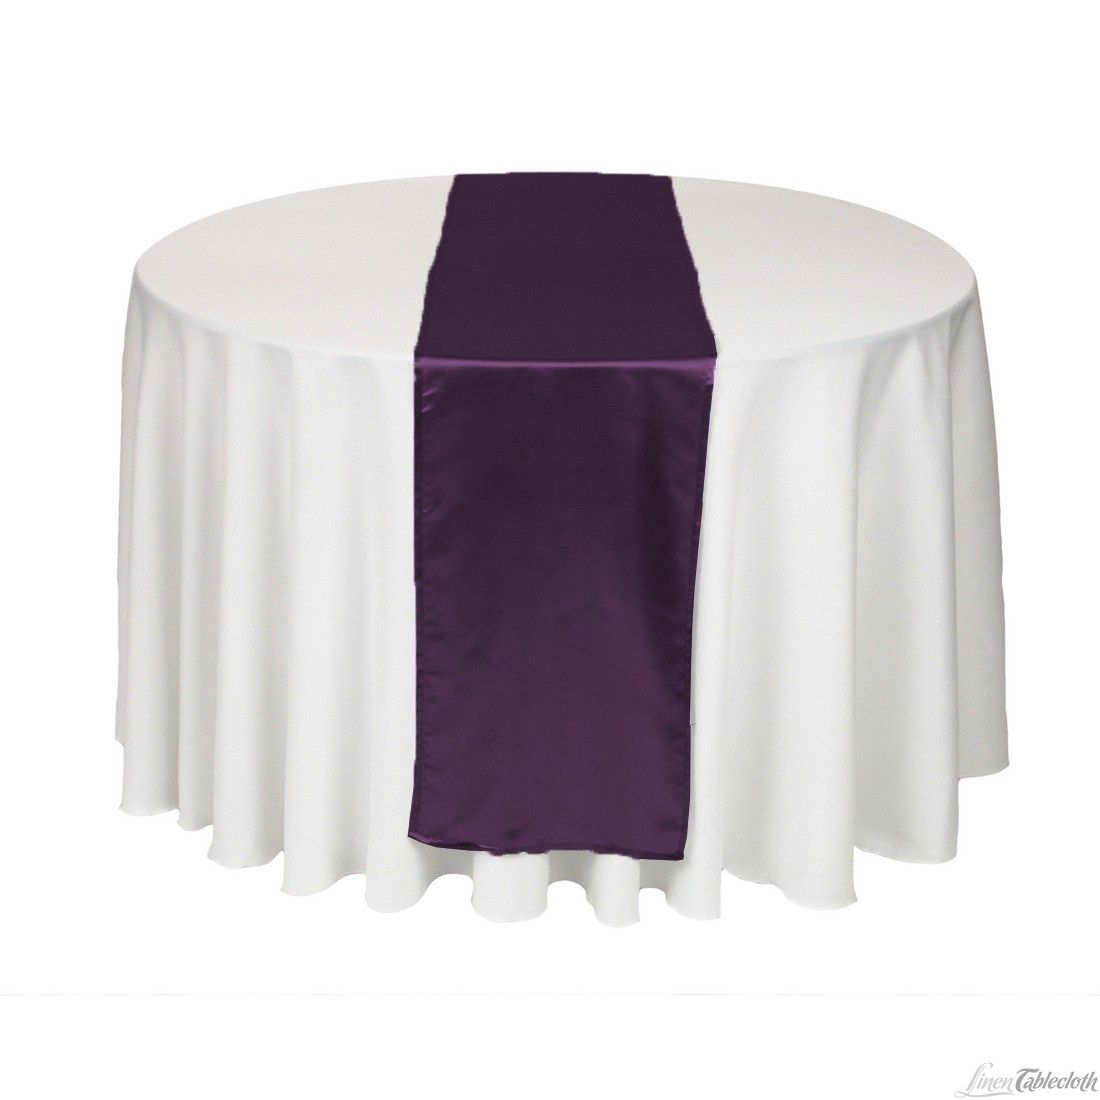 Buy 14 X 108 Inch Eggplant Satin Table Runner For Your Wedding At  LinenTablecloth! Add Satin Table Runners As Finishing Touches To Your  Wedding Tablecloths ...